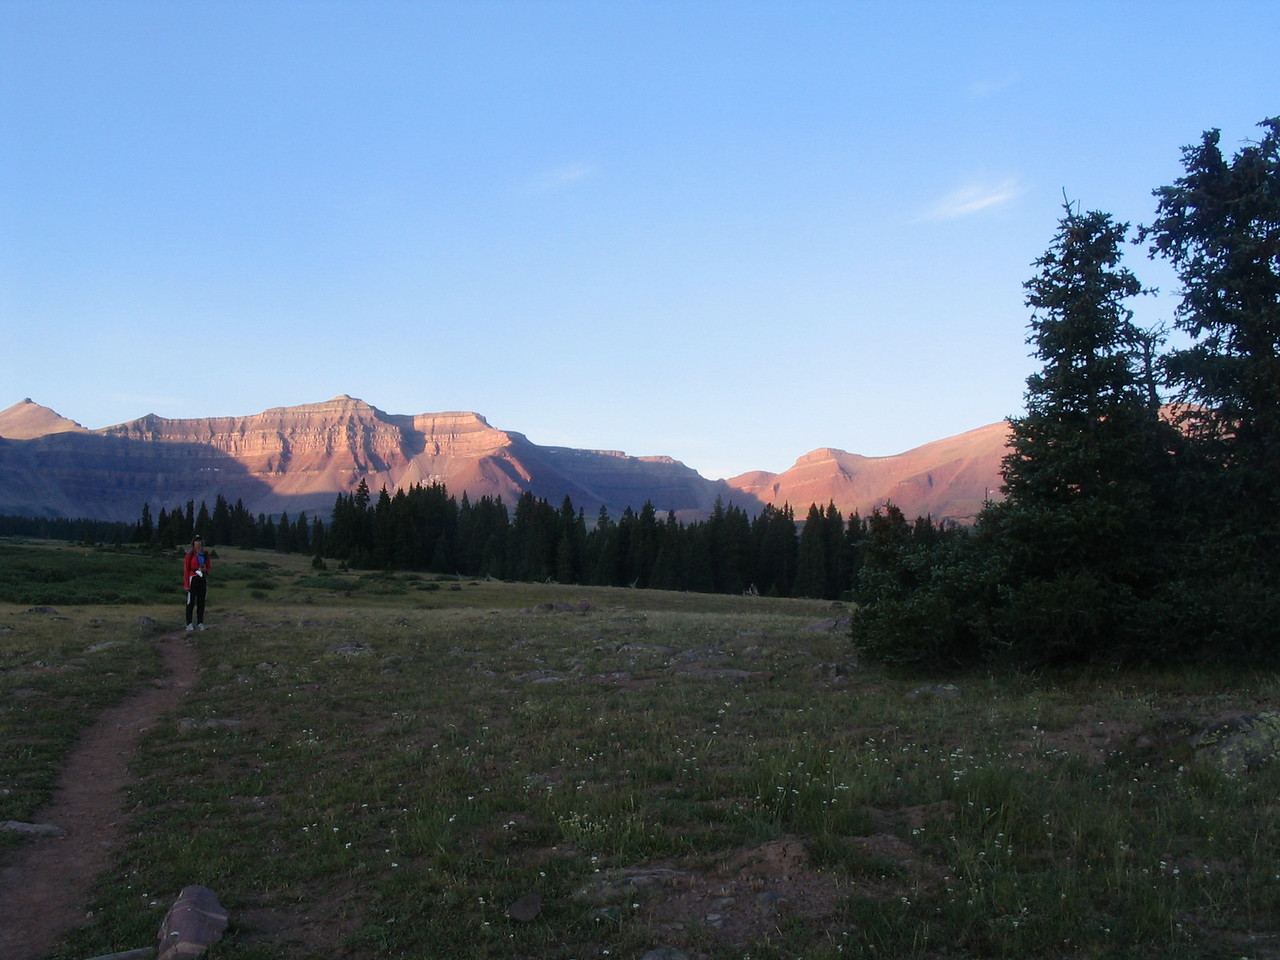 The Henry's Fork trail crossing the meadow section below Dollar Lake, about 7 miles in.  King's Peak is the pyramid shaped peak on the far left side of the image.